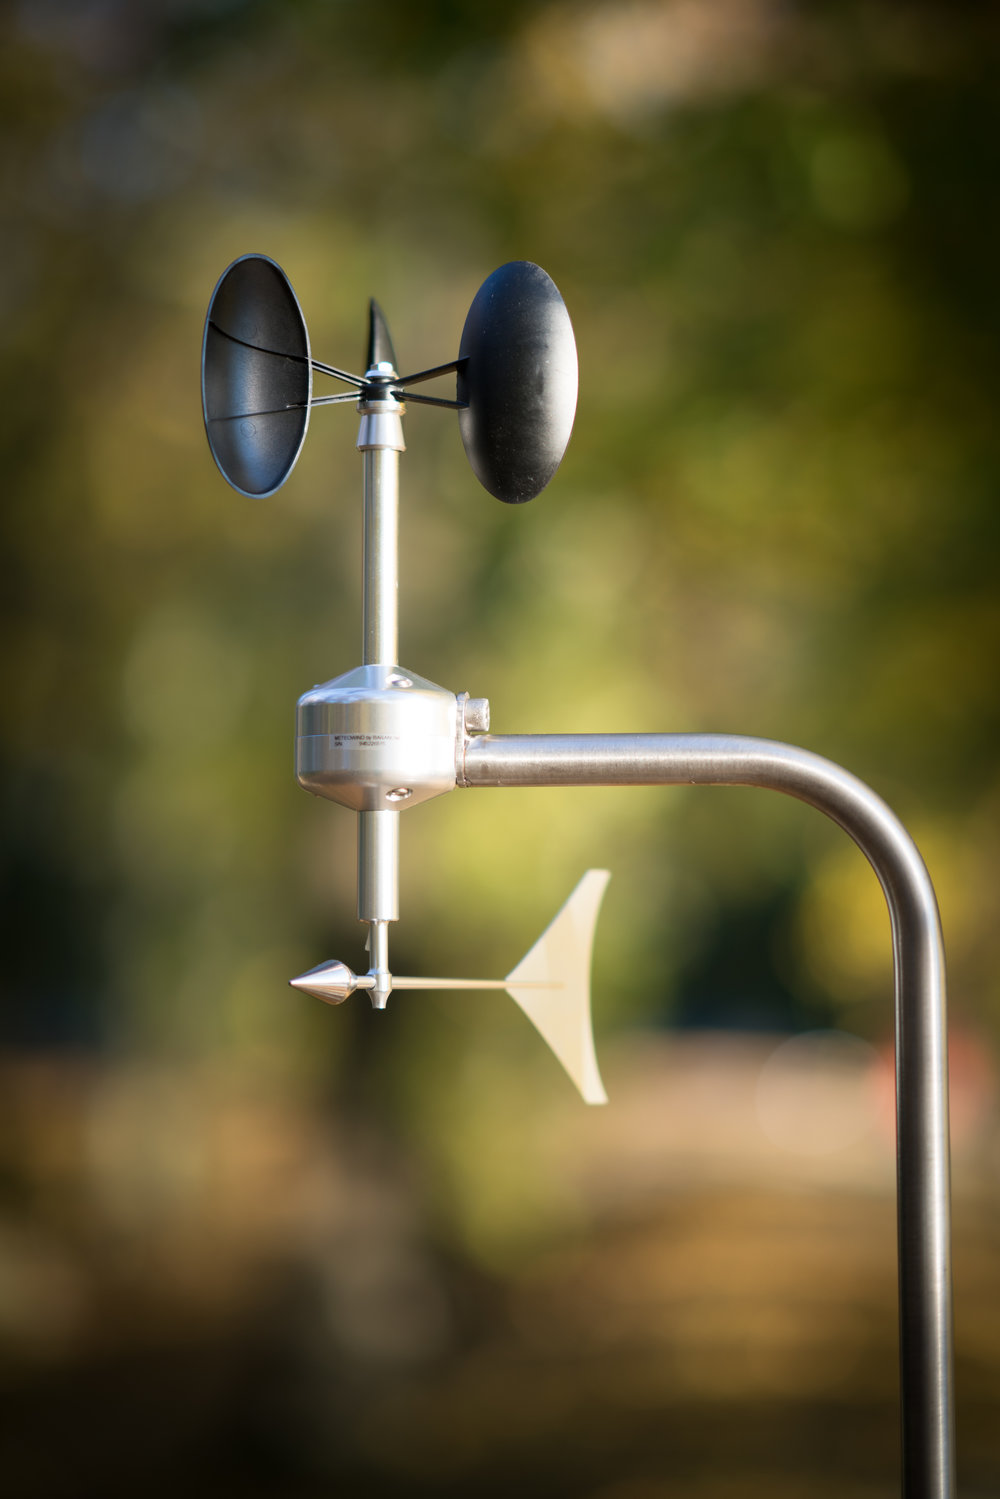 MeteoWind 1 anemometer with wind vane with tree & path background